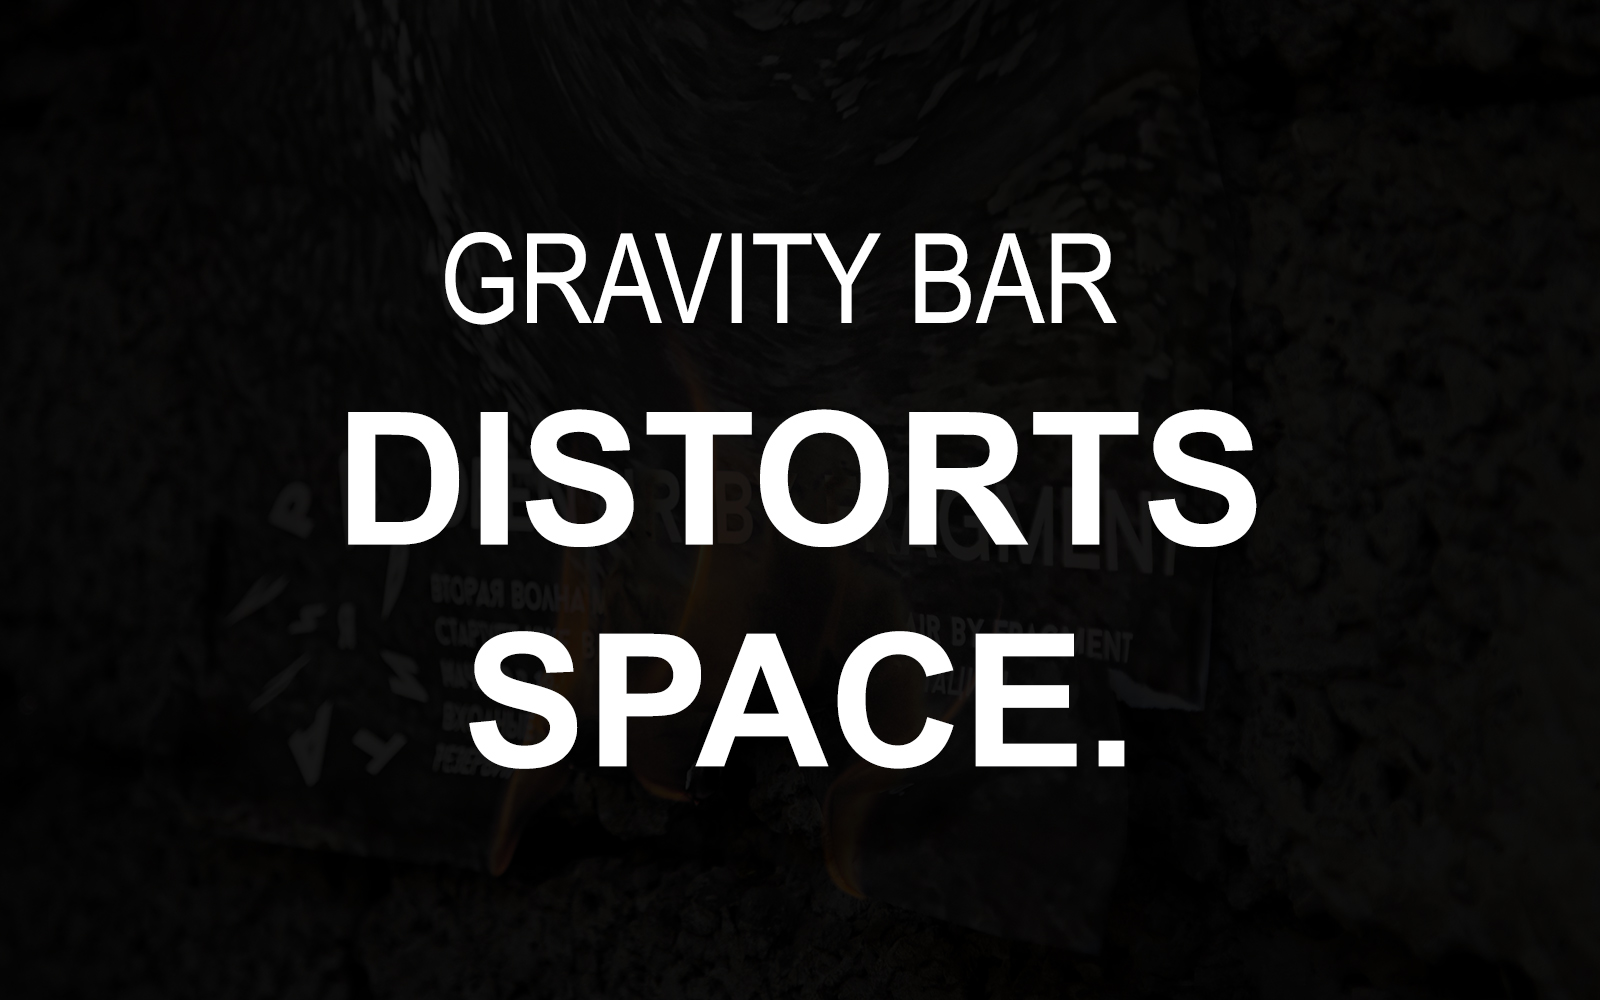 Gravity Bar distorts space